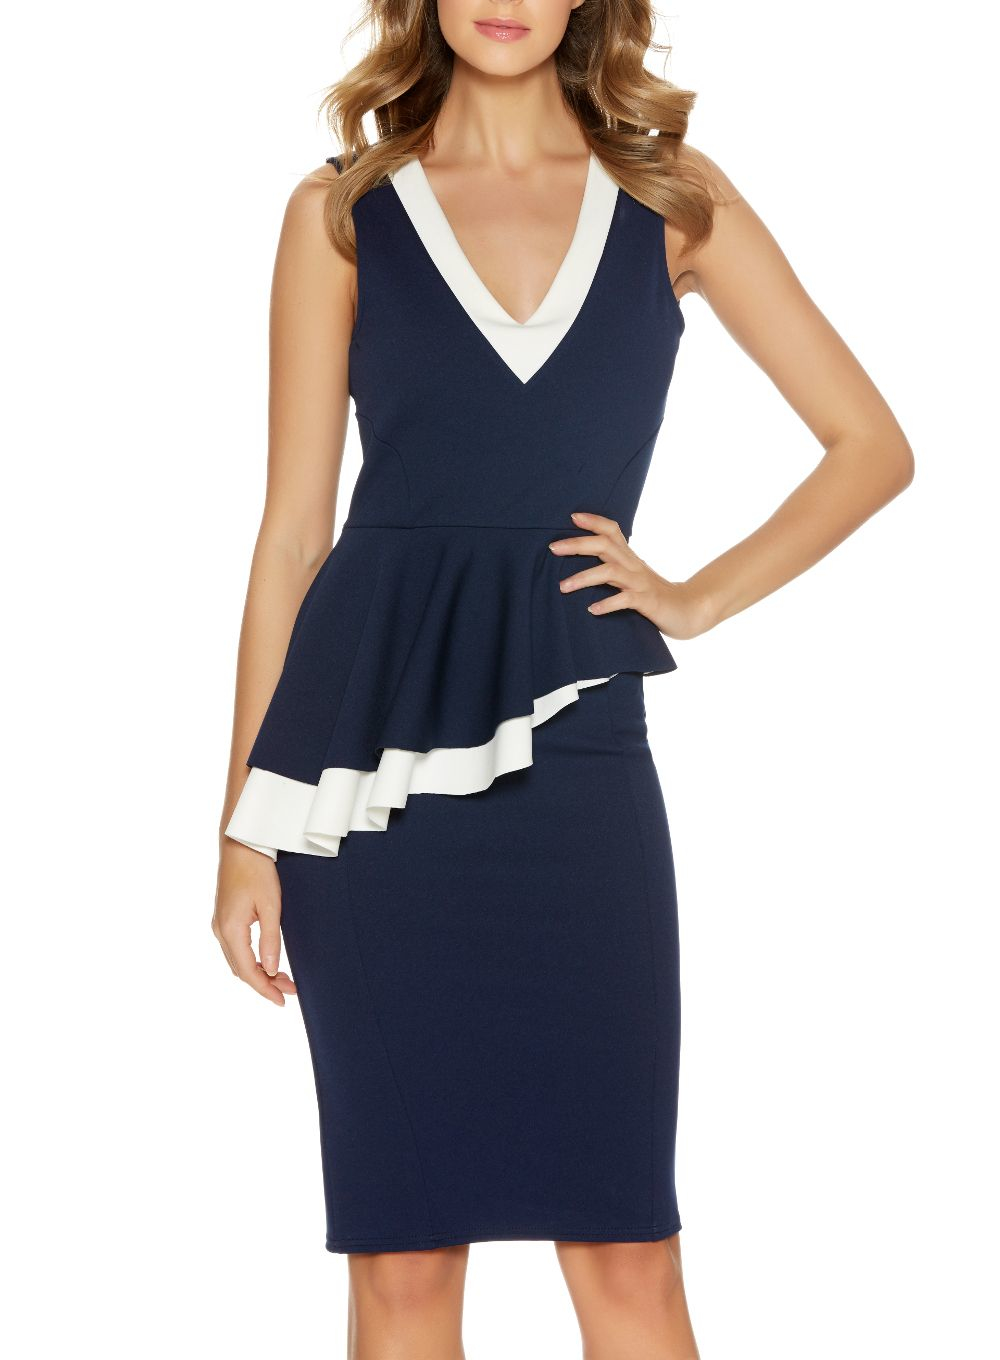 Free shipping and returns on Women's Blue Dresses at reasonarchivessx.cf